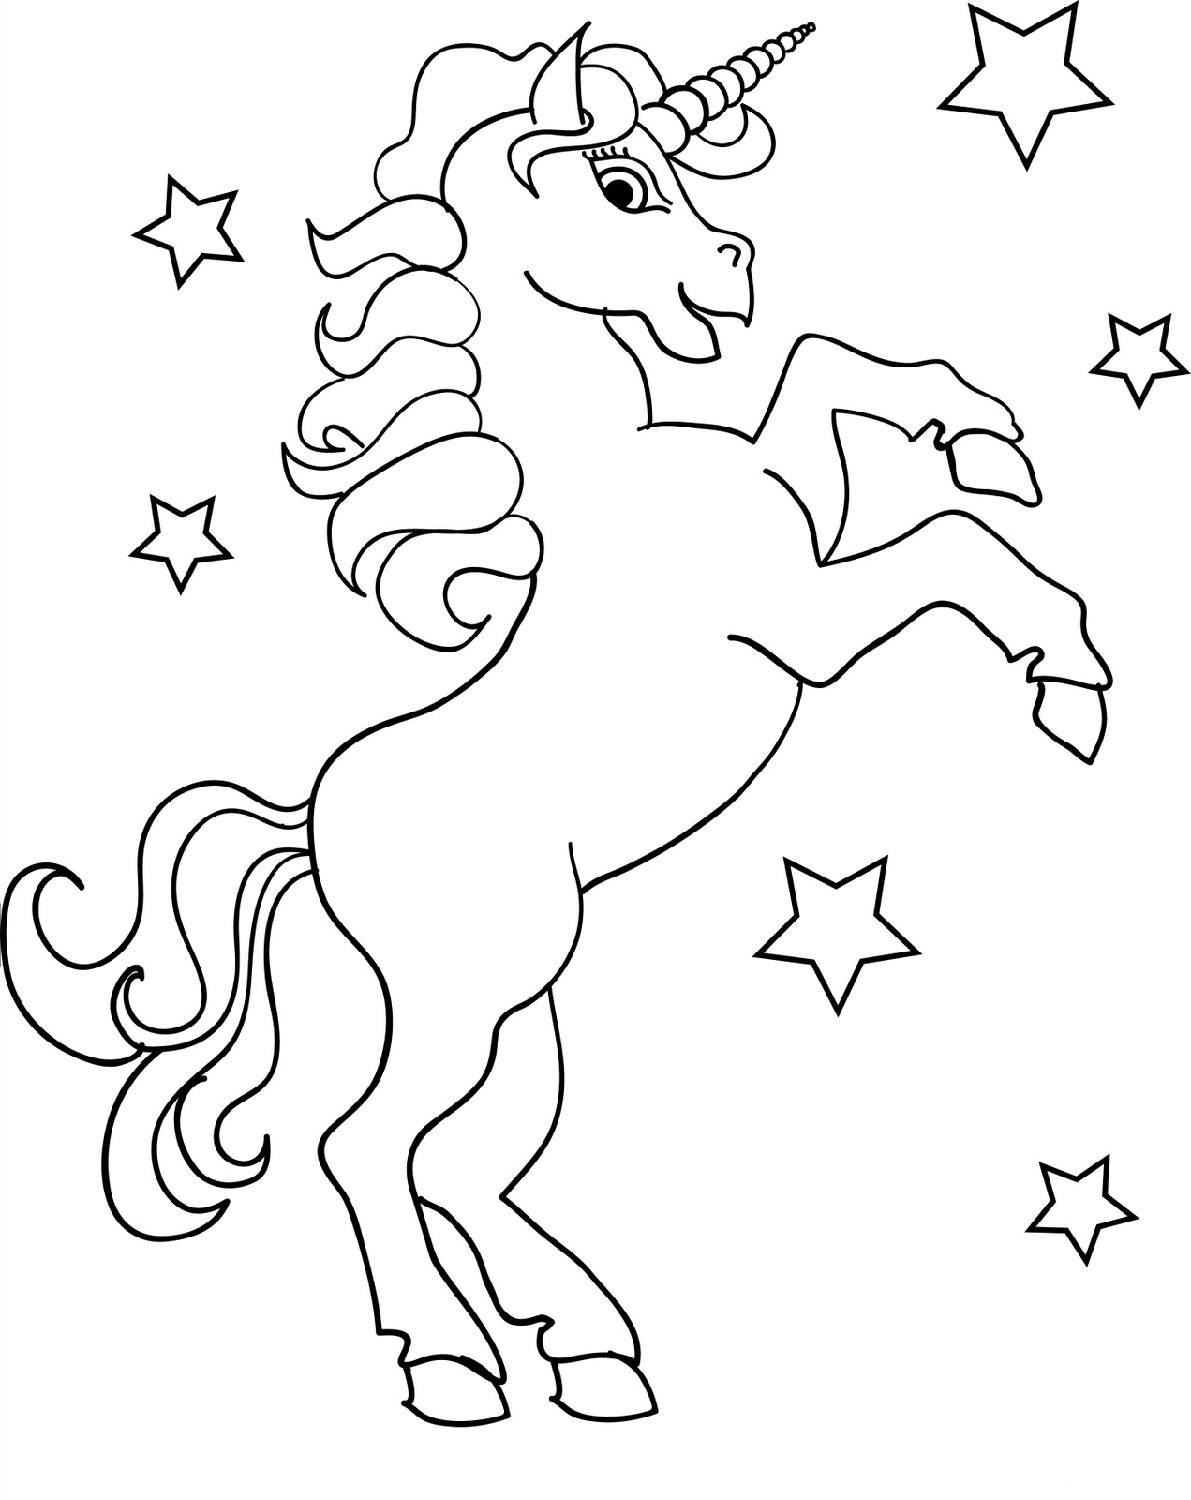 unicorn color page free printable unicorn coloring pages for kids unicorn color page